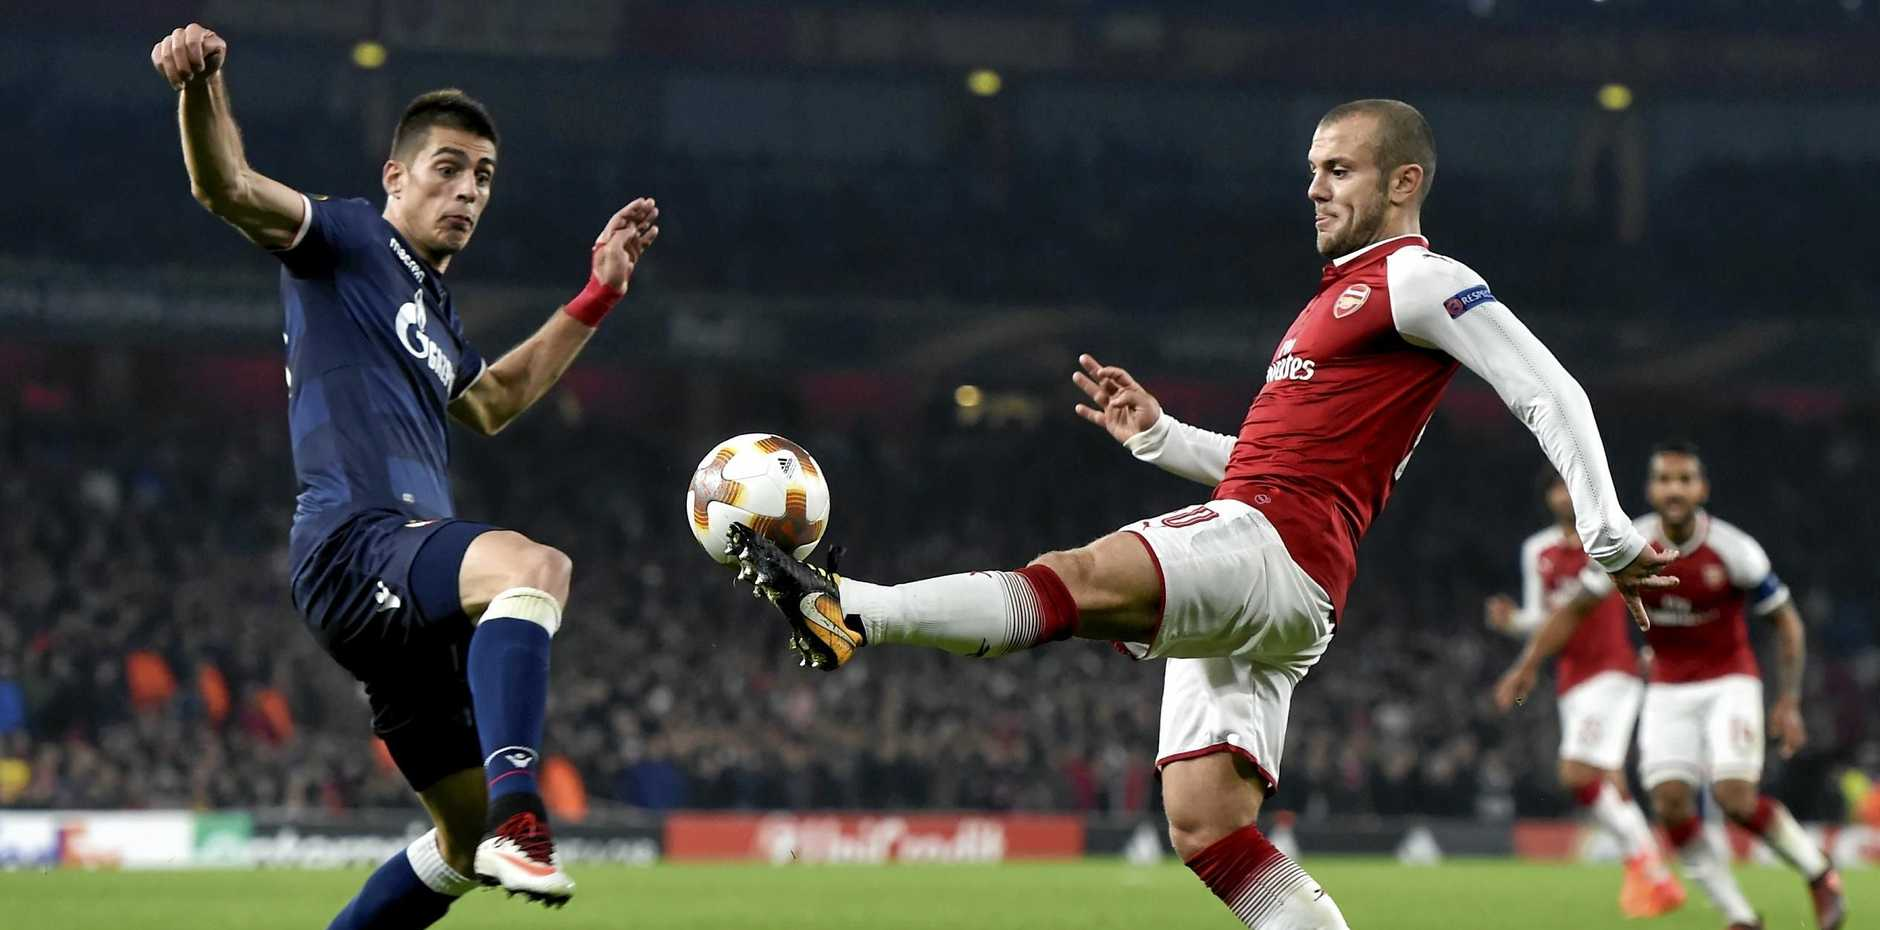 Jack Wilshere (right) of Arsenal and Vujadin Savic of Red Star in action during the UEFA Europa League group stage match.